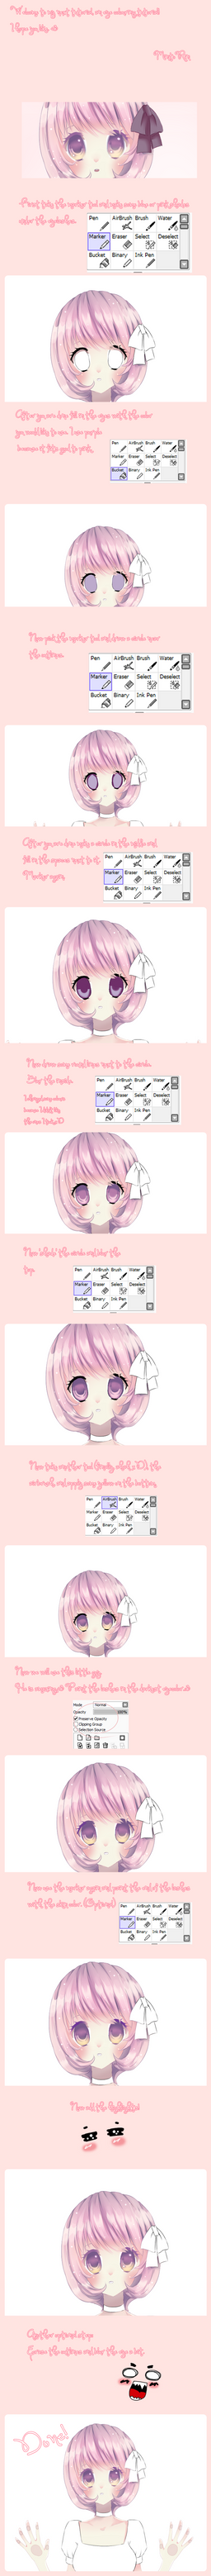 New eye colouring tutorial by Luumies